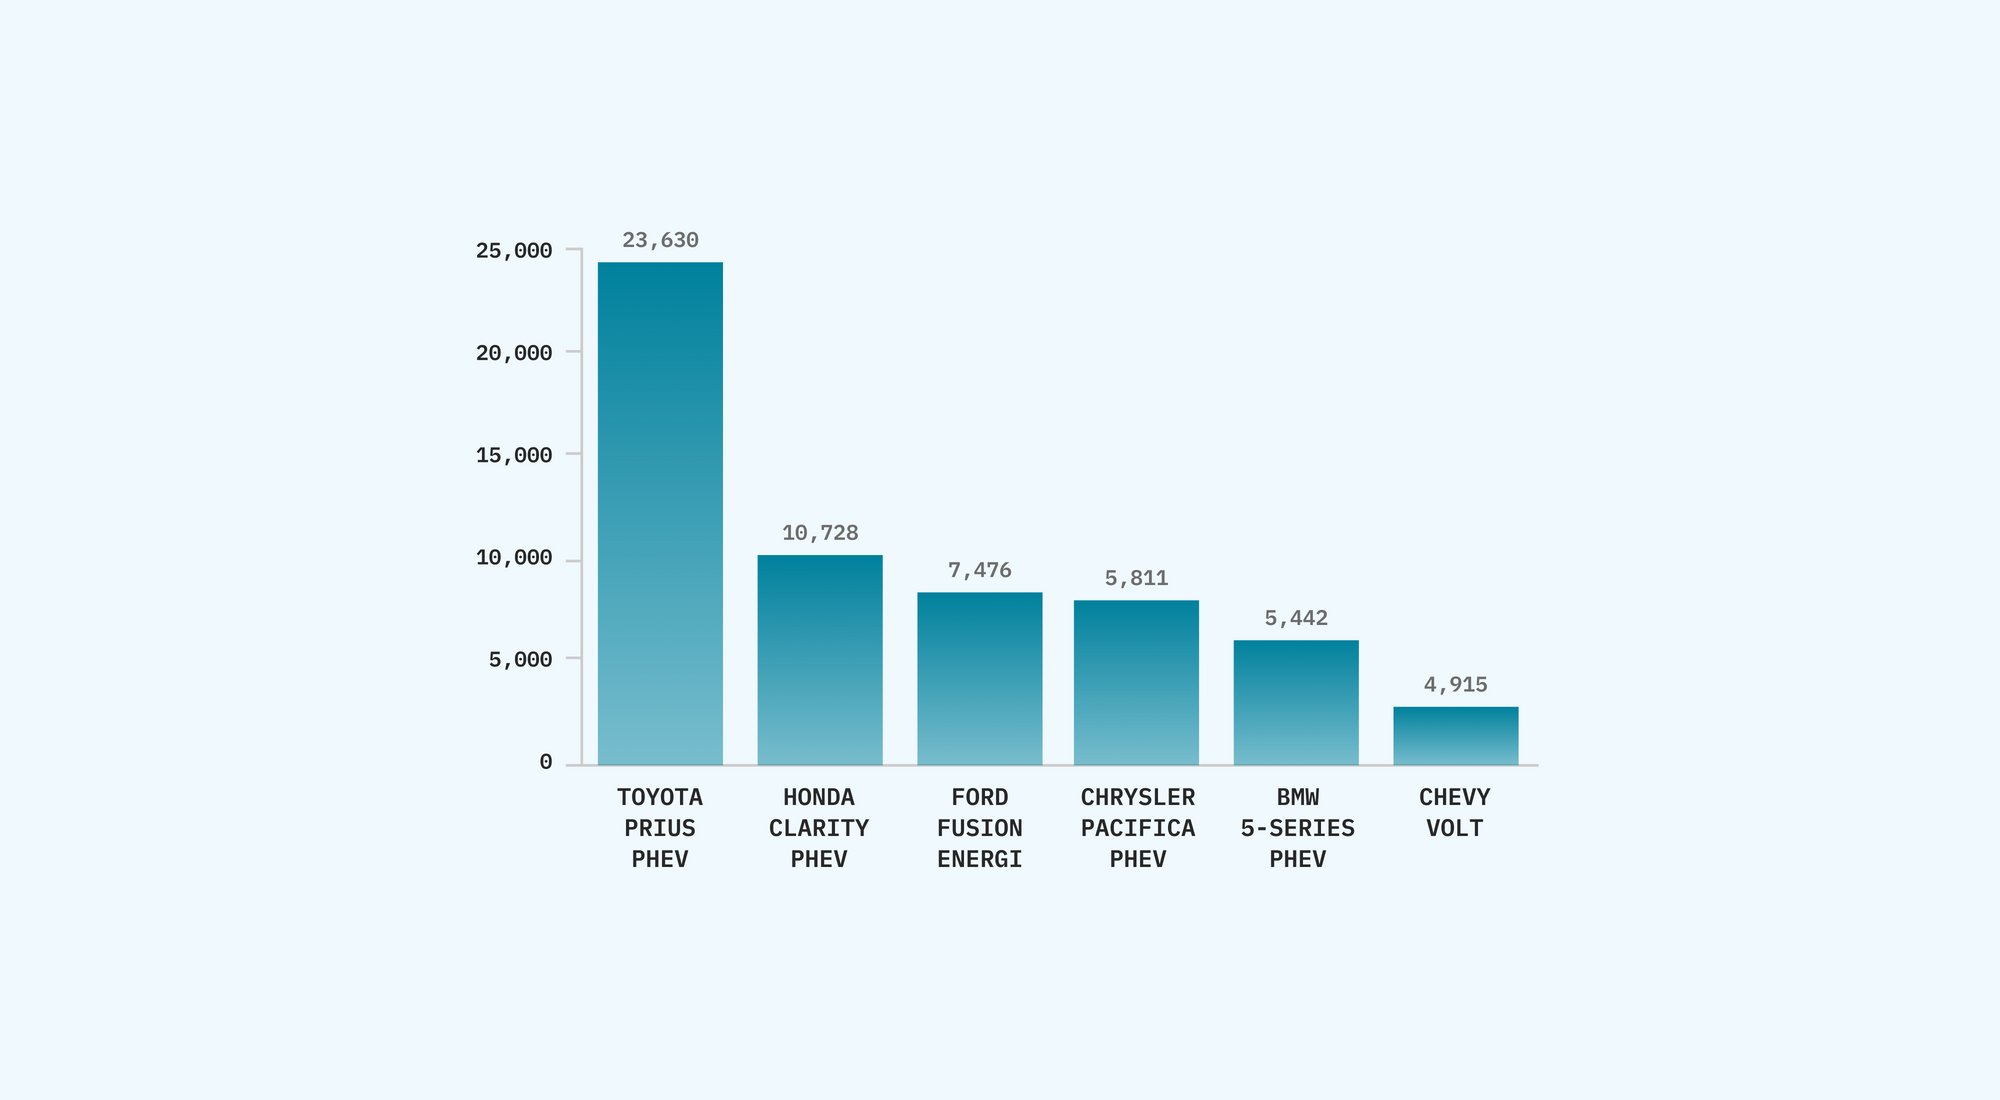 Bar chart showing 2019 sales numbers for Toyota Prius PHEV, Honda Clarity PHEV, Ford Fusion Energi, Chrysler Pacifica PHEV, BMW 5-Series PHEV, and Chevy Volt.